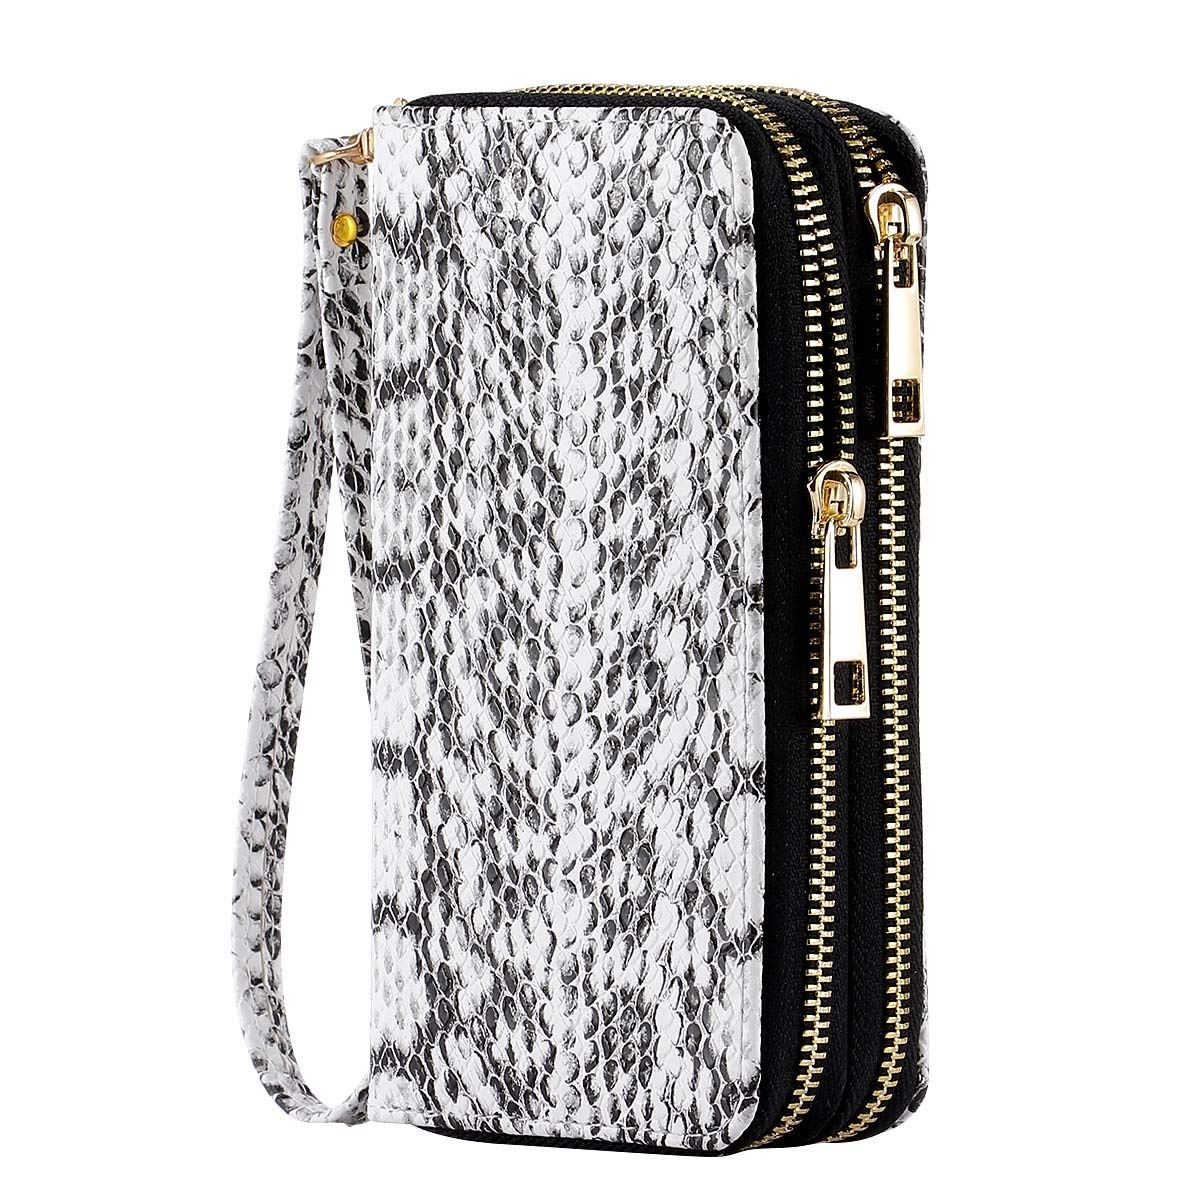 HAWEE Cellphone Wallet Dual Zipper Wristlet Purse with Credit Card Case/Coin Pouch/Smart Phone Pocket Soft Leather for Women or Lady, SnakeSkin White by HAWEE (Image #1)